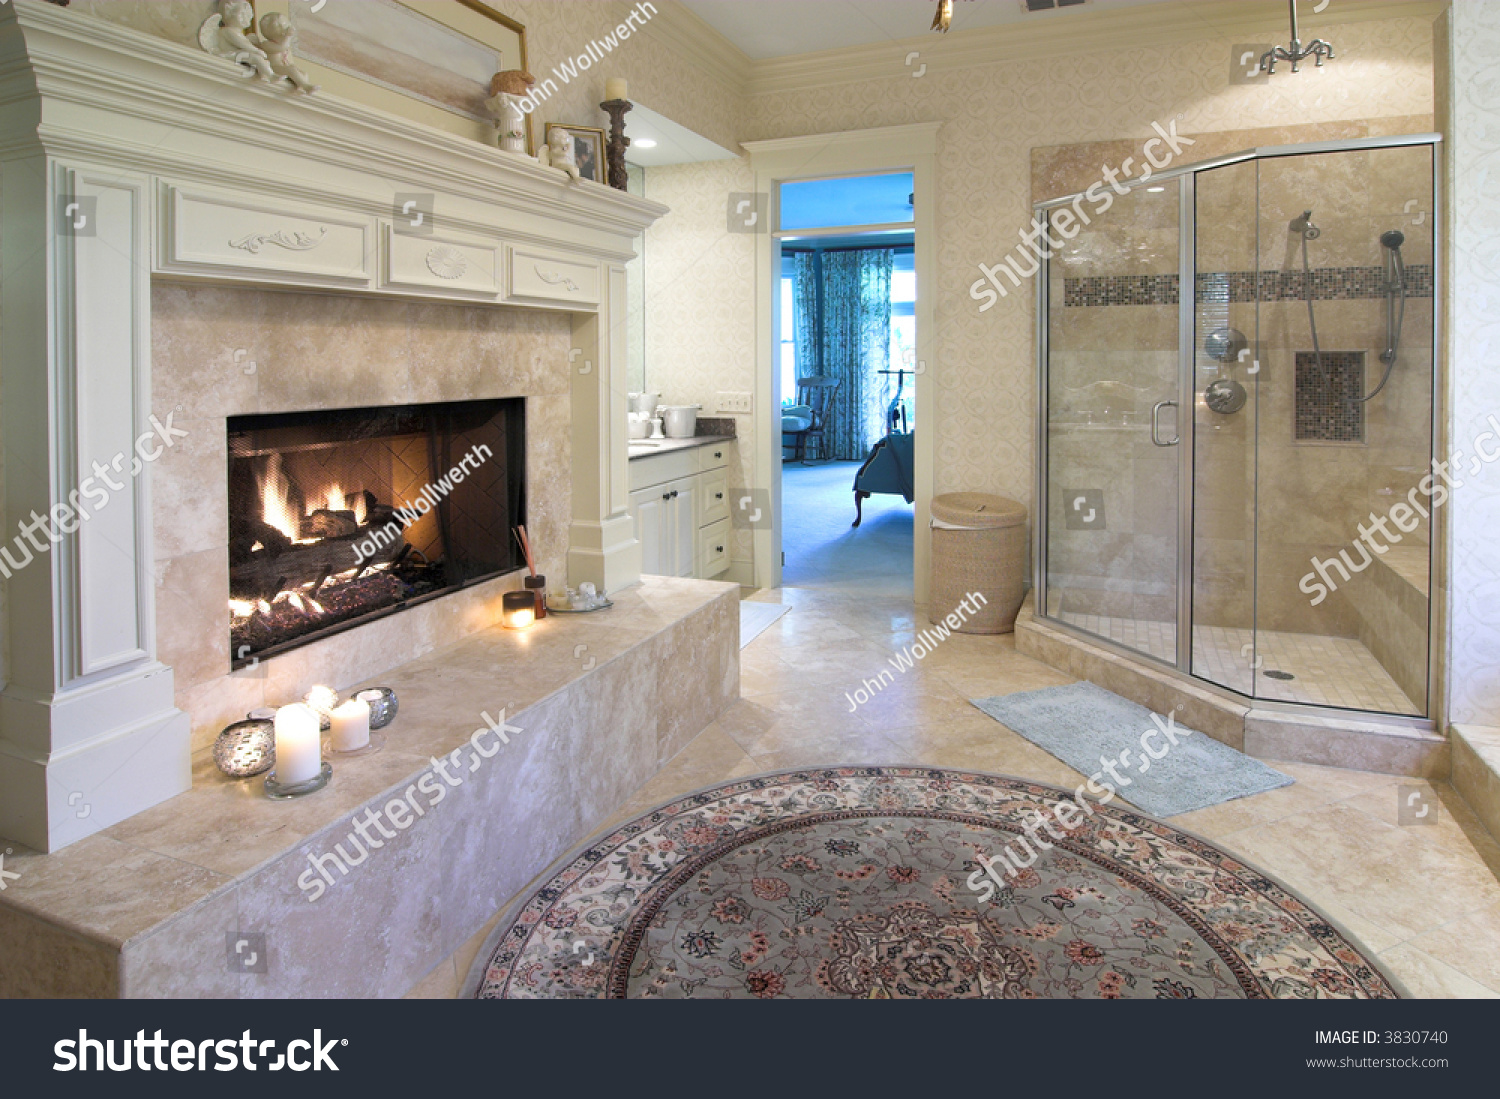 Extravagant Bathrooms Extravagant Bathroom With Fireplace Glass Shower And